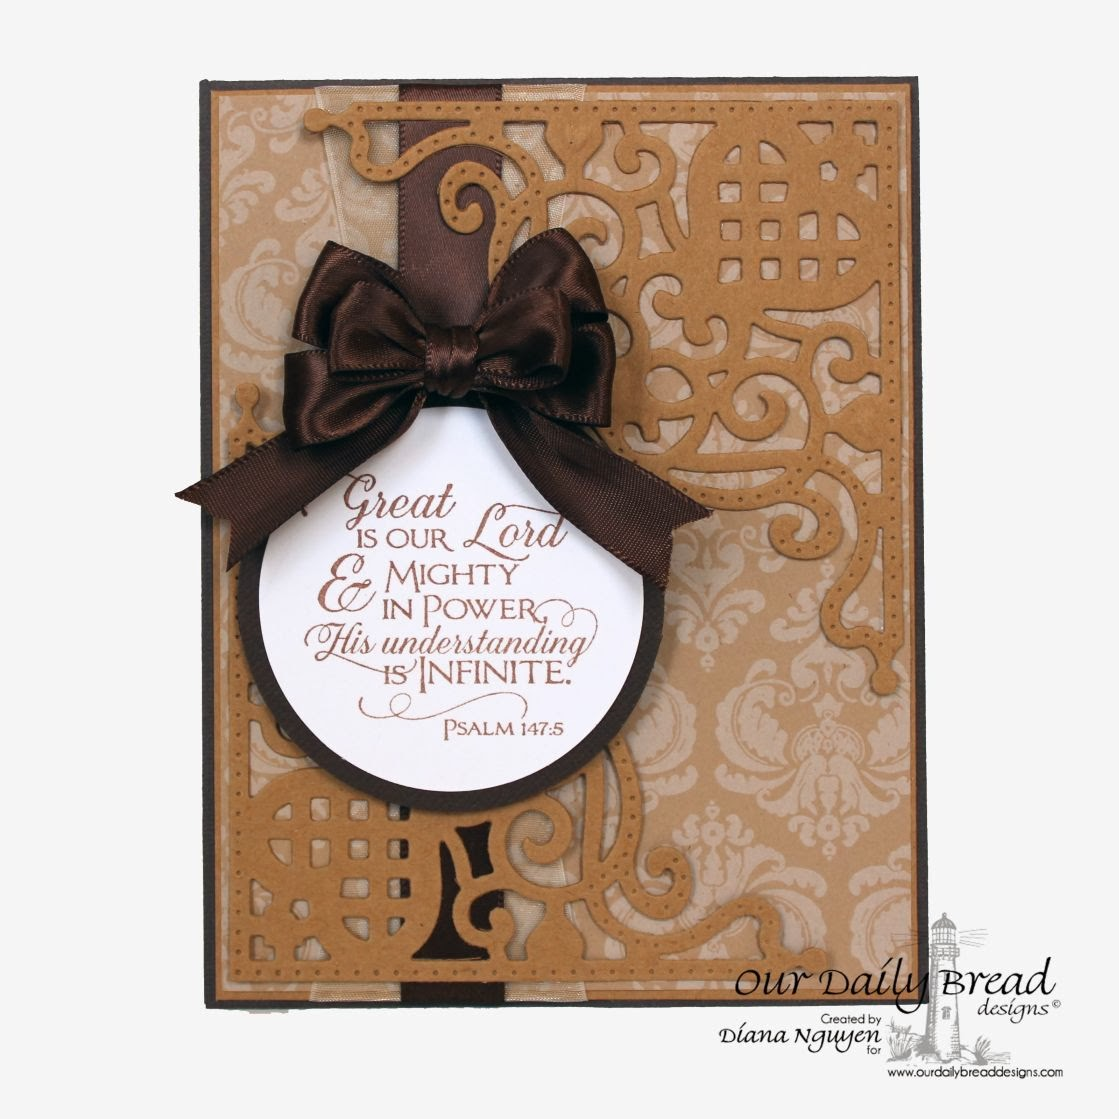 Diana Nguyen, Our Daily Bread Designs, Scripture Collection 11, ODBD Custom Decorative Corners Dies